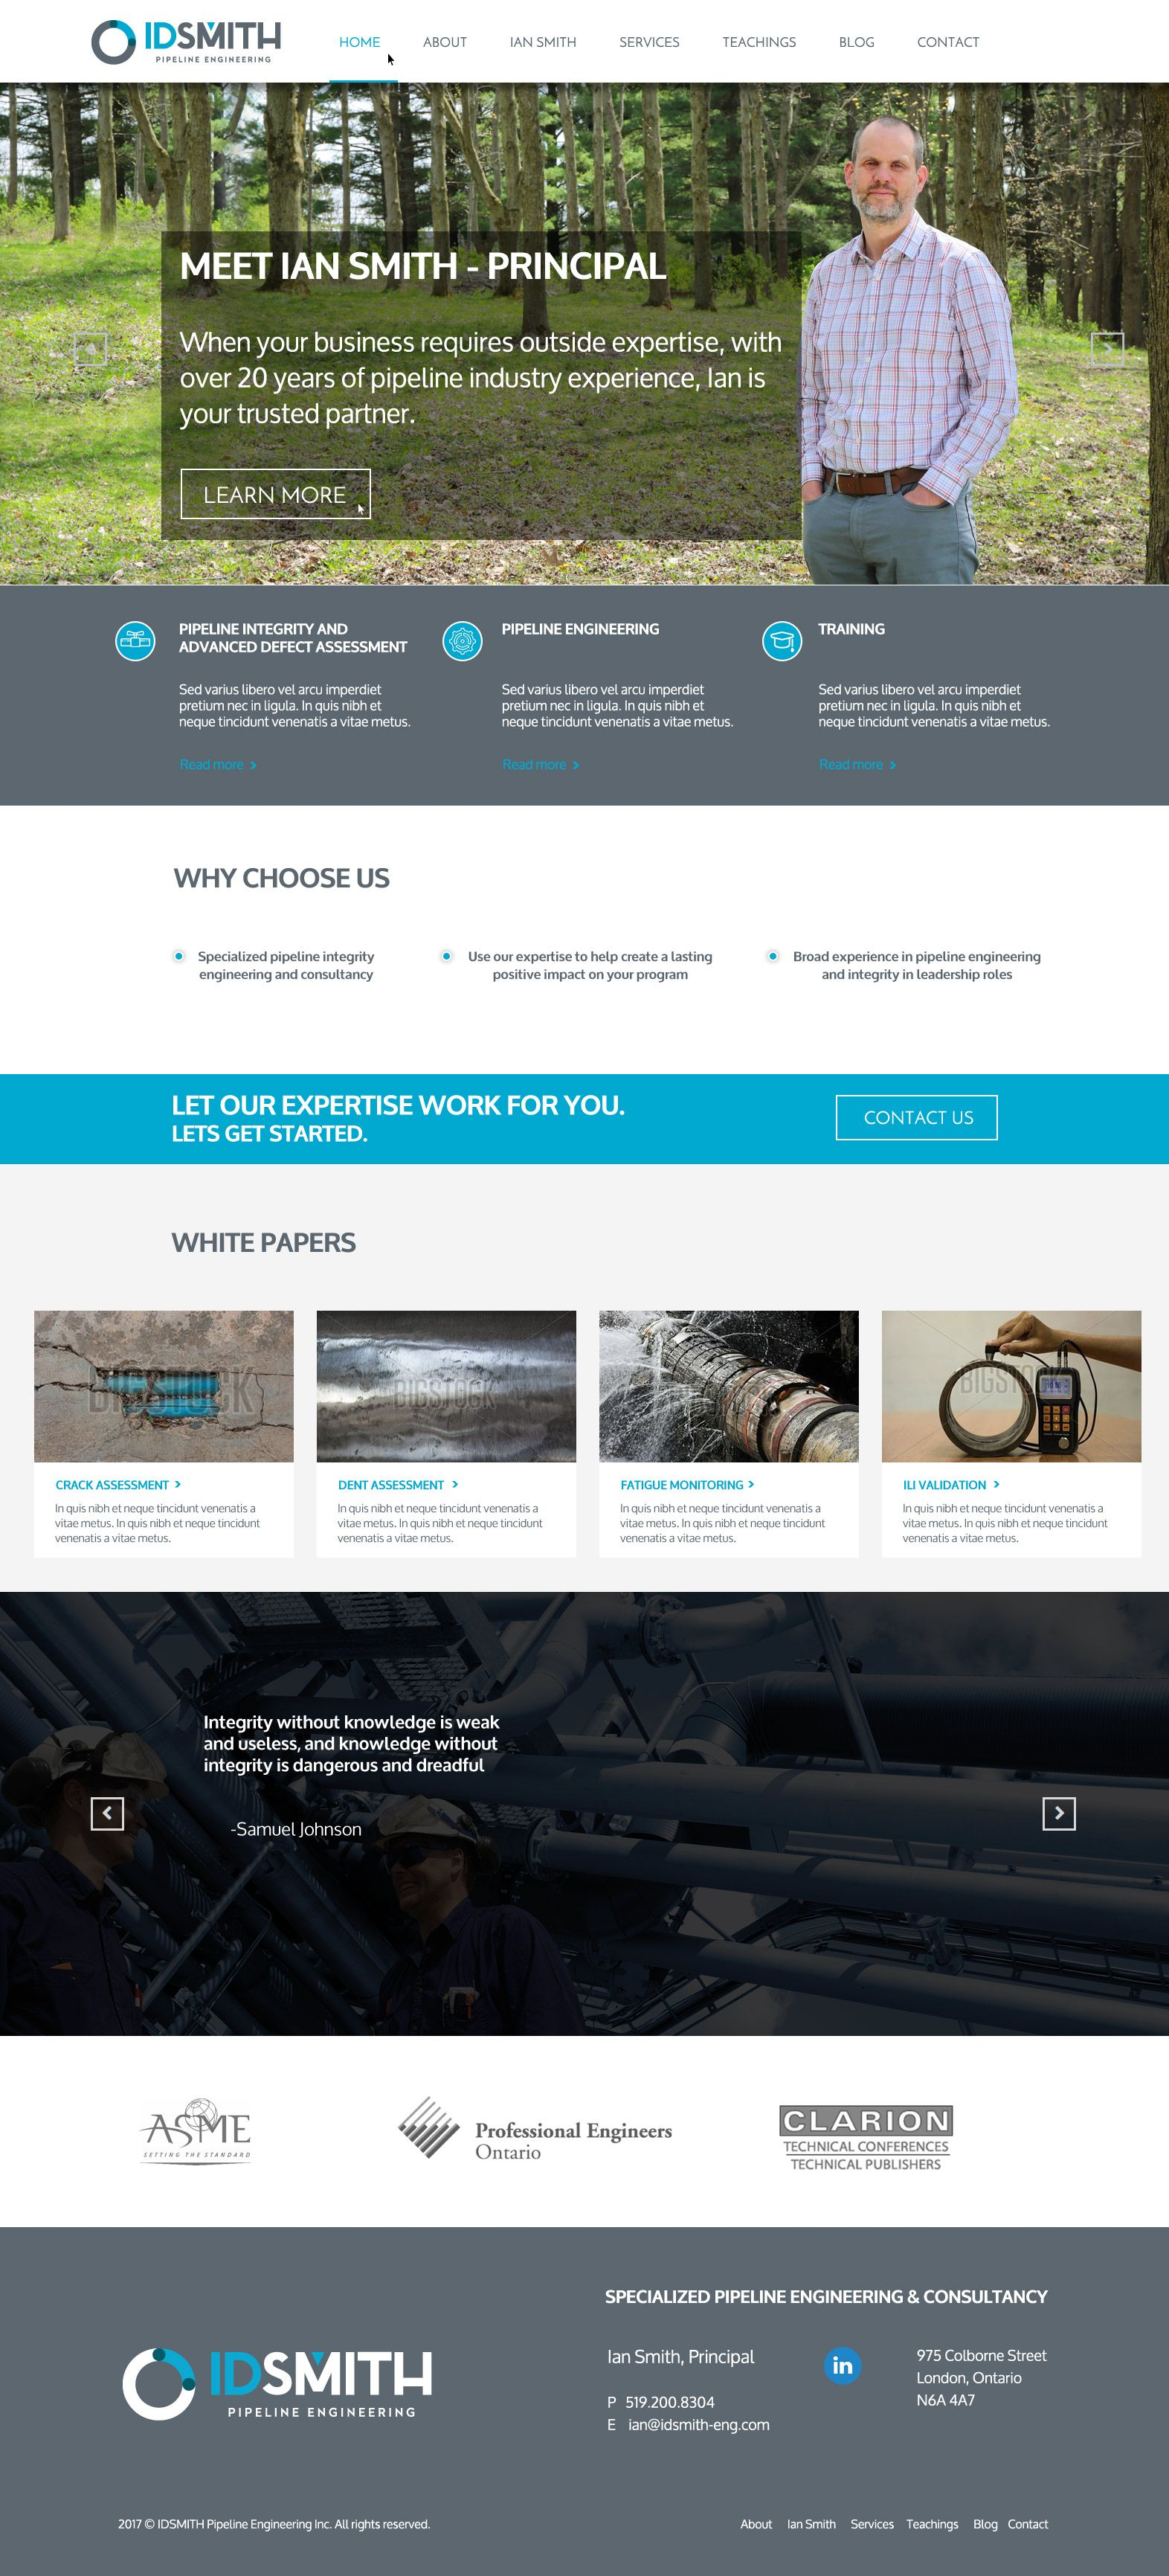 Custom Website Design By Zoo Media Group For Id Smith An Engineering Consulting Firm Out Of London Ont Custom Website Design Web Design Engineering Consulting